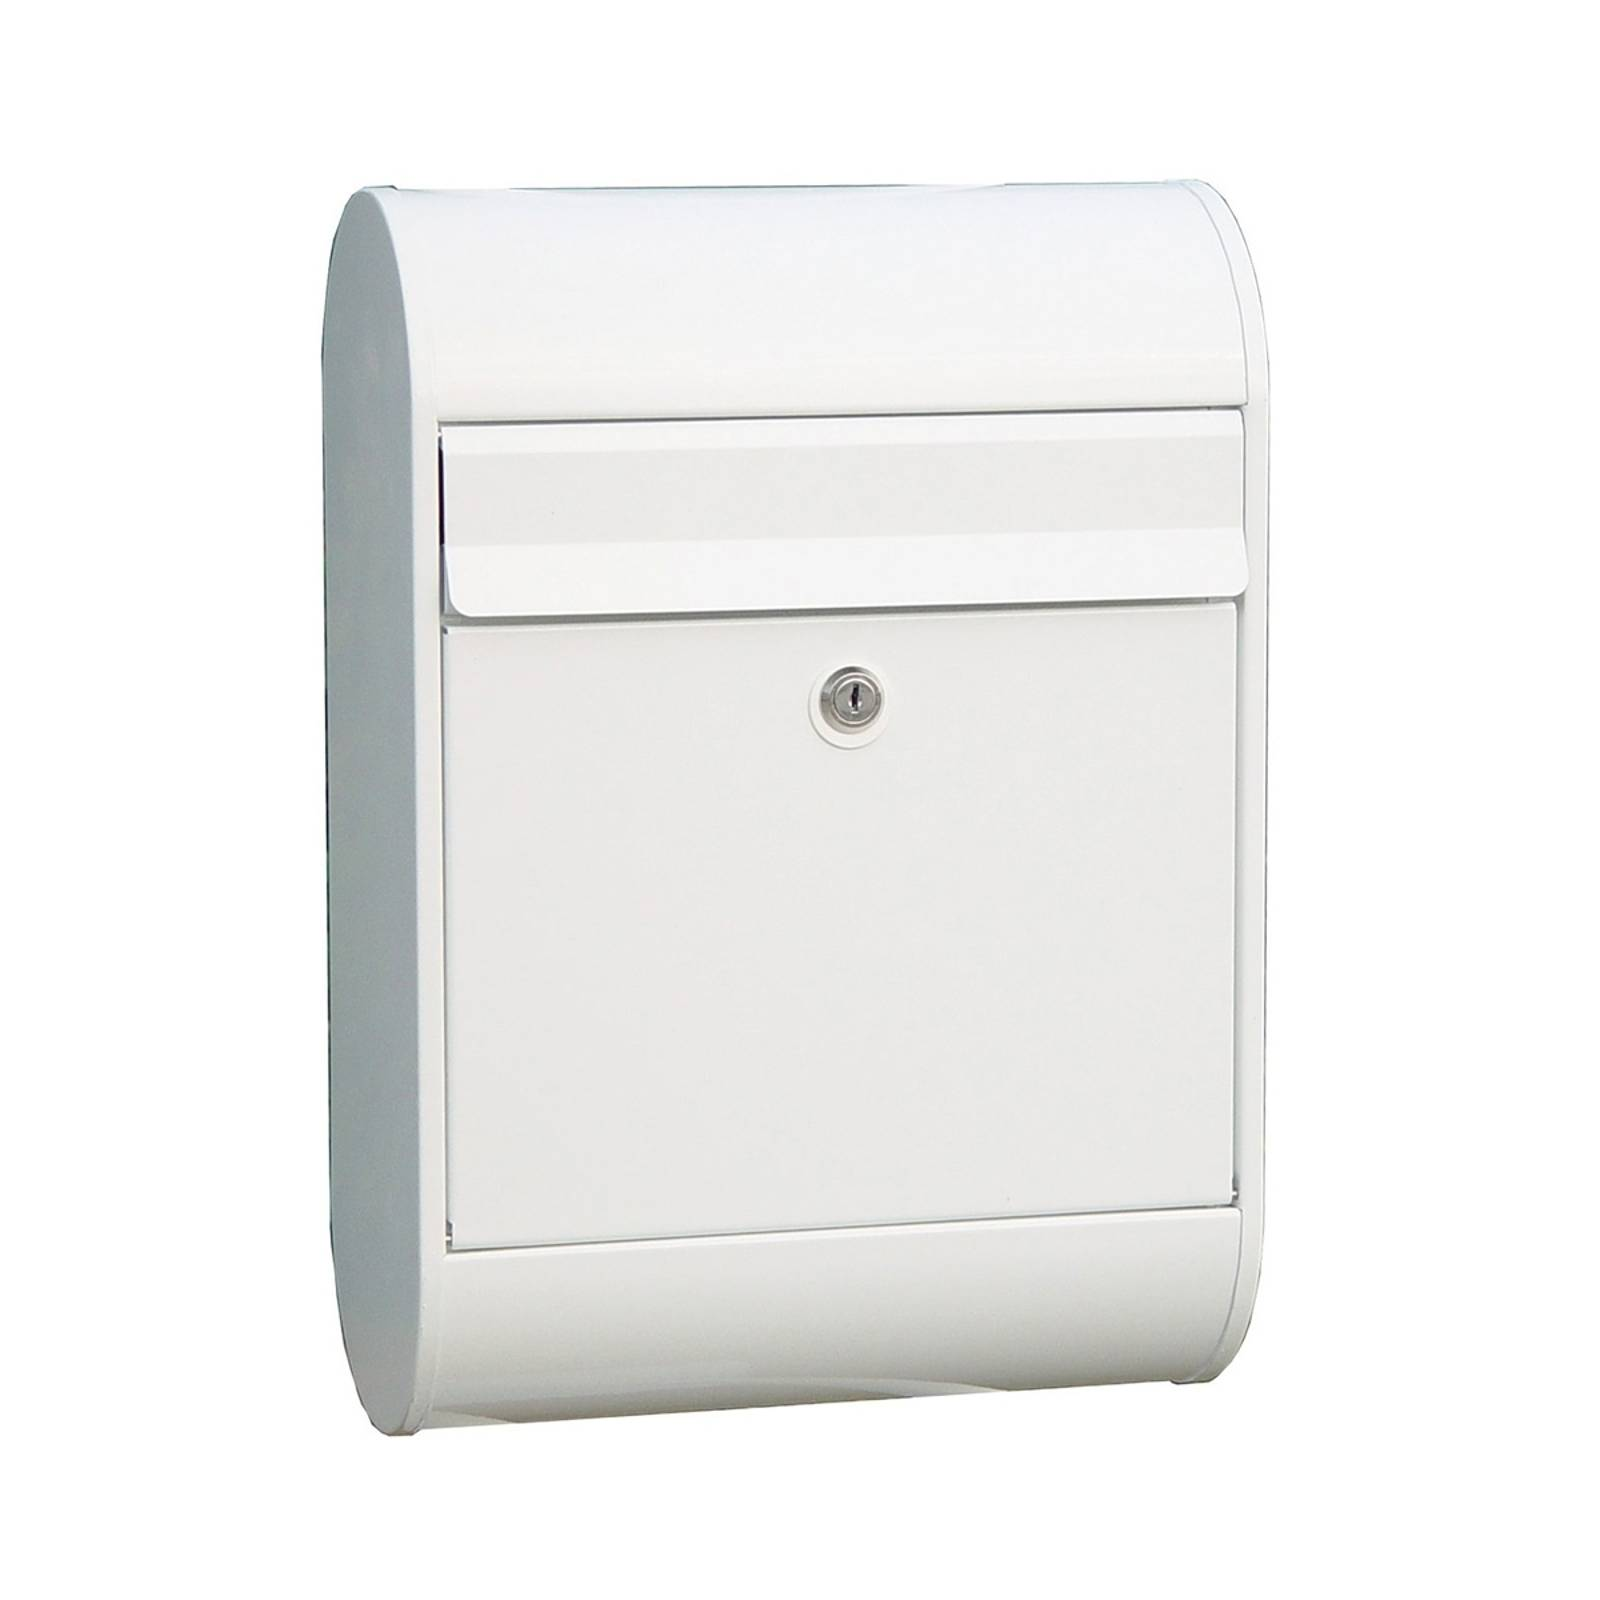 Lovely letterbox 5000, white from Juliana